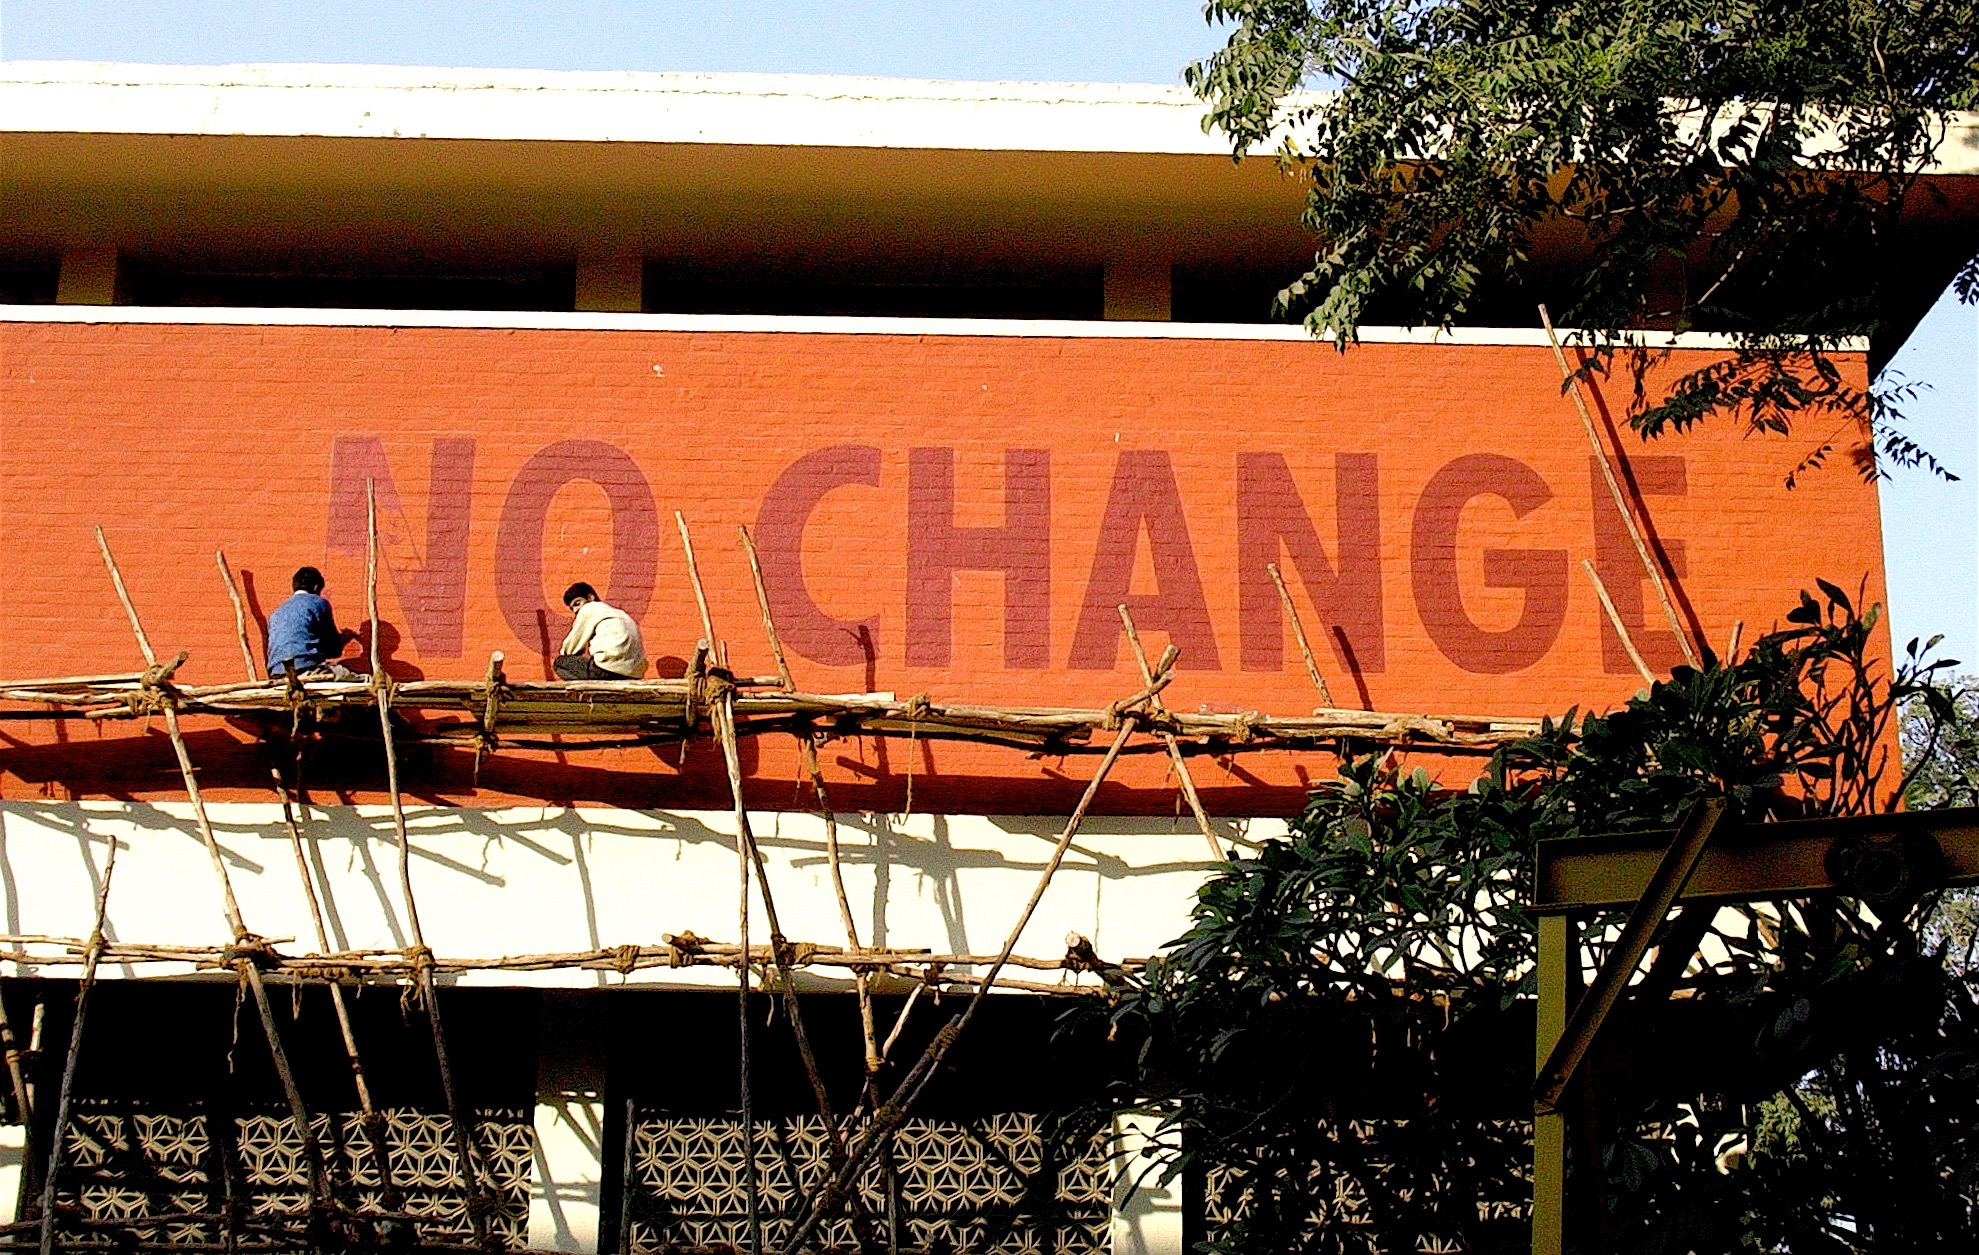 2005, Textinstallation, Triennale India, New Delhi